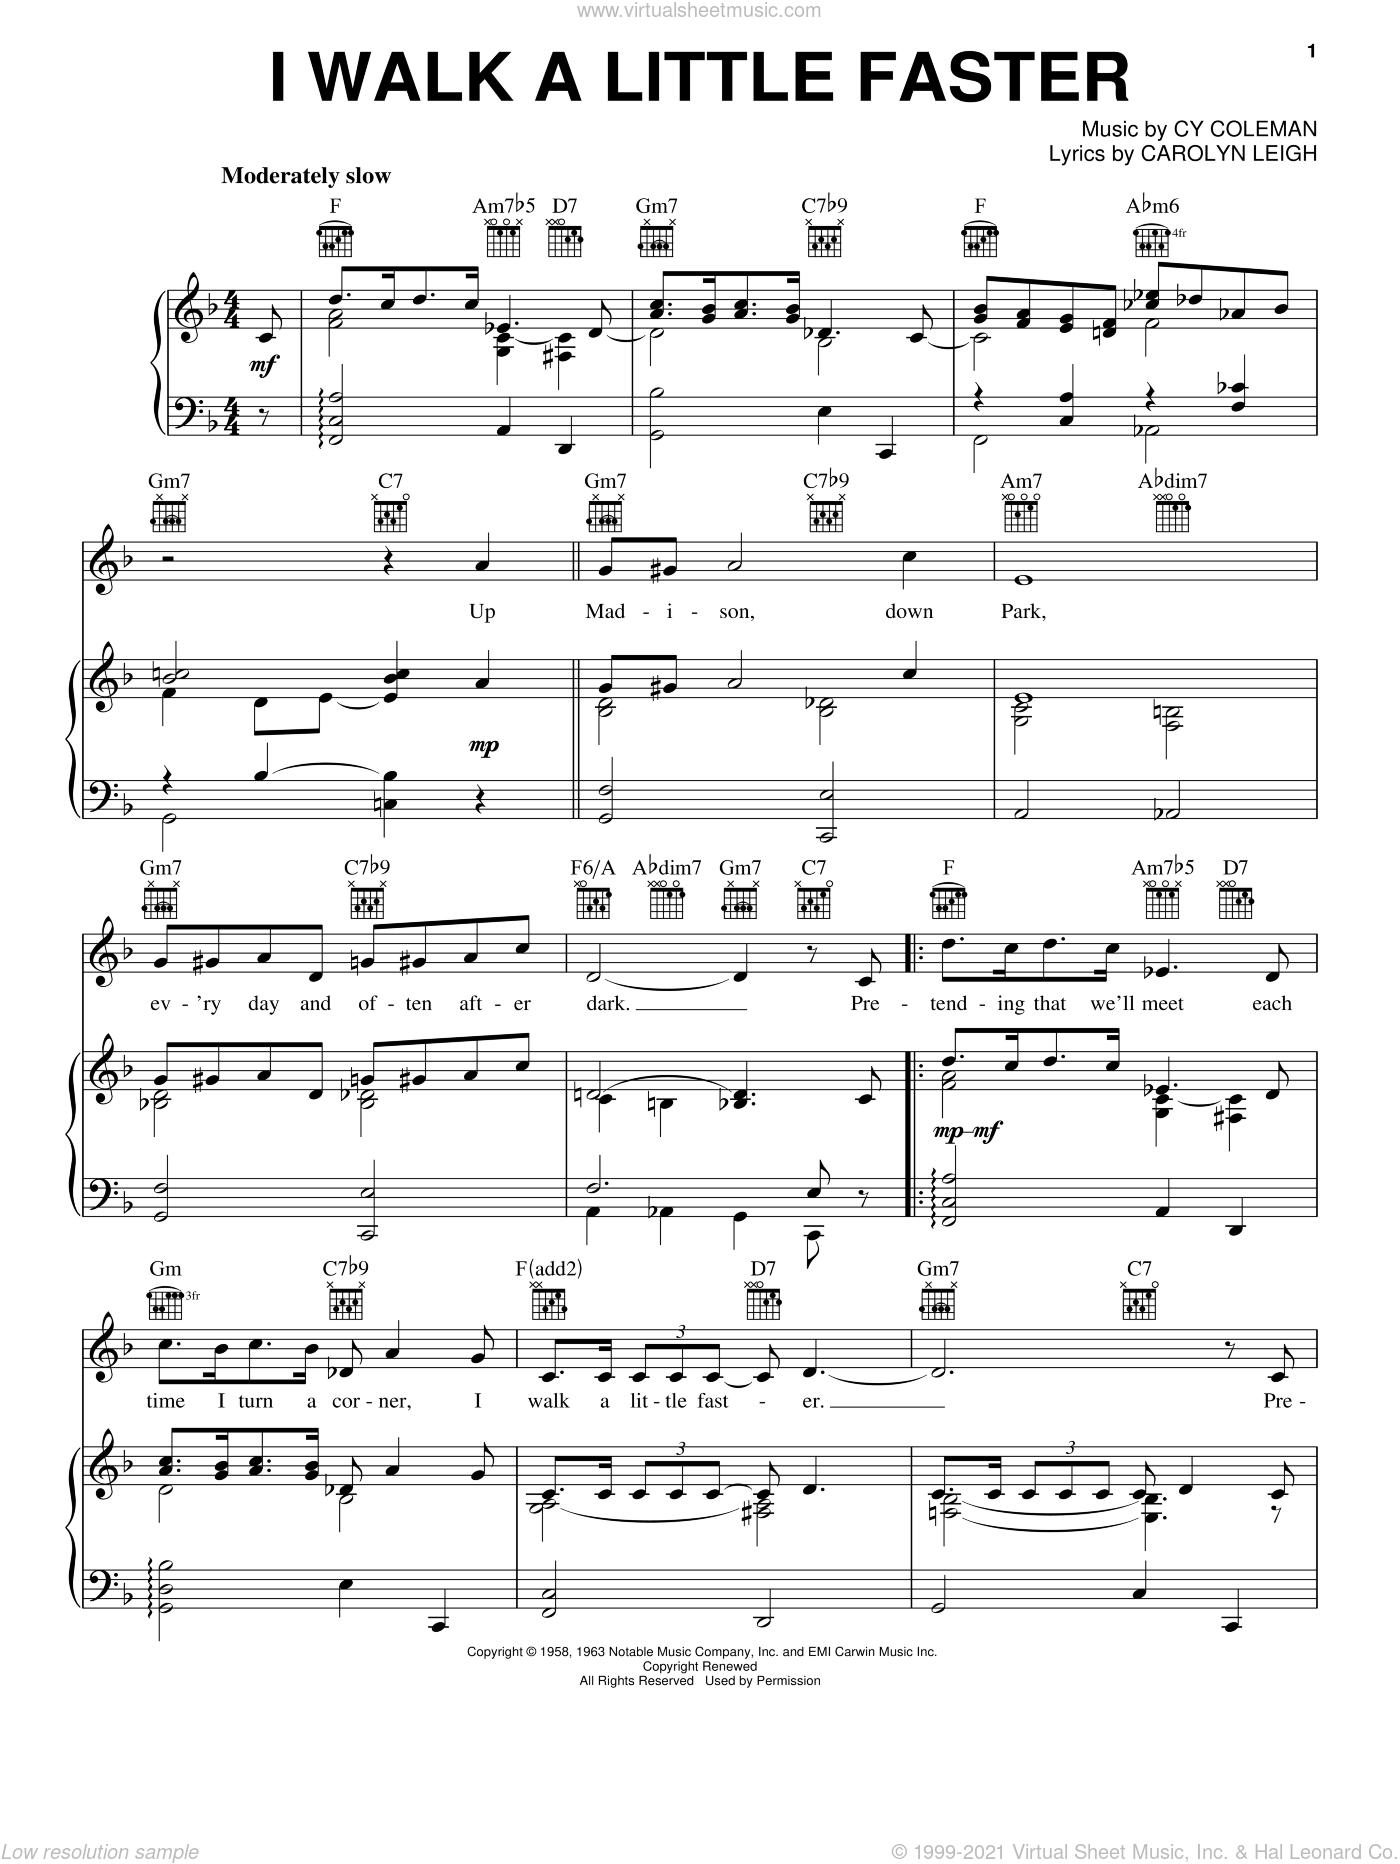 I Walk A Little Faster sheet music for voice, piano or guitar by Cy Coleman